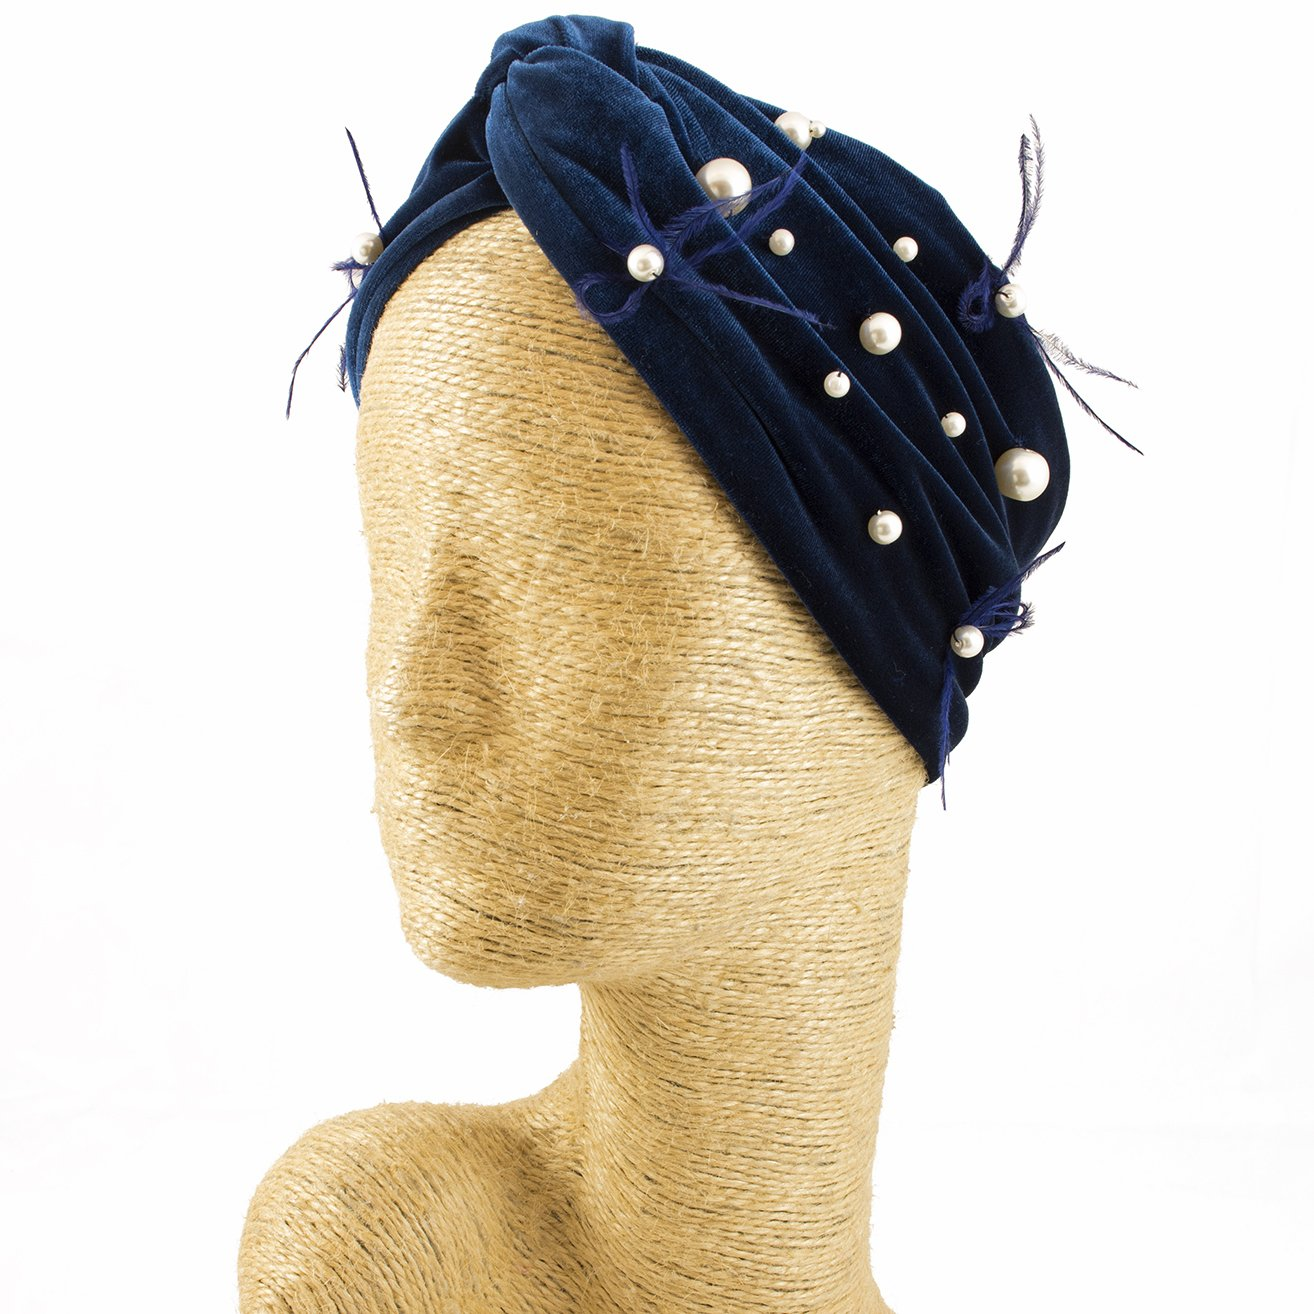 Fascinator, Velvet Headbands, Millinery, Worldwide Free Shipment, Delivery in 2 Days, Customized Tailoring, Designer Fashion, Pearl, Head wrap, Boho Accessories, Blue, Beaded Headbands, Jewelled